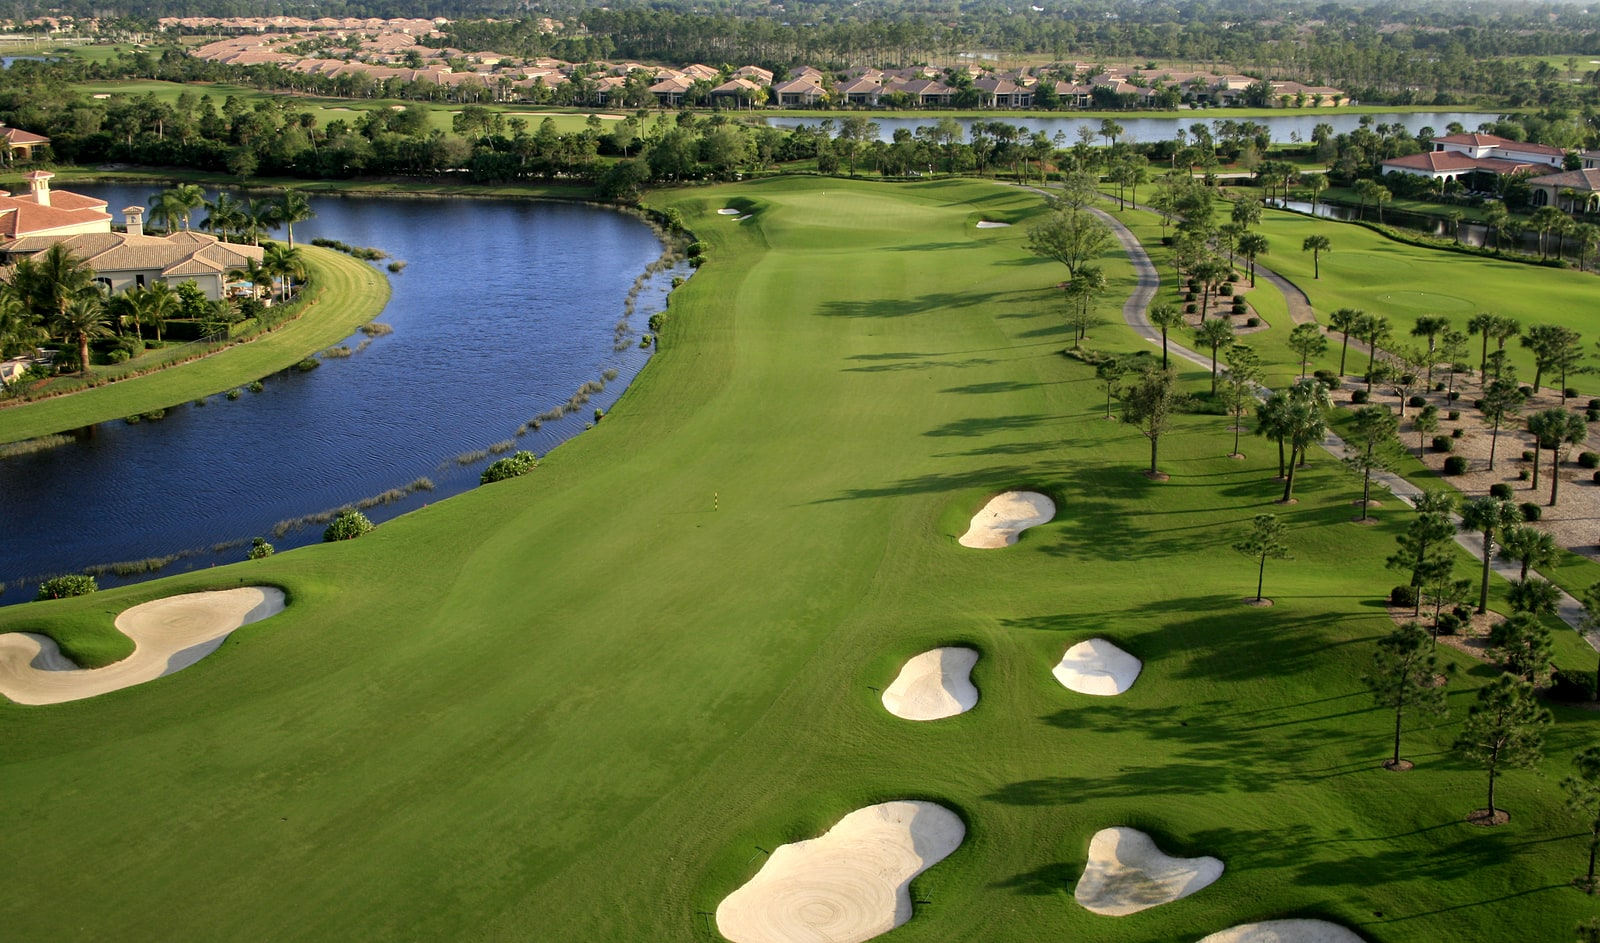 An aerial photograph of a golf course in Florida. ** Note: Slight blurriness, best at smaller sizes